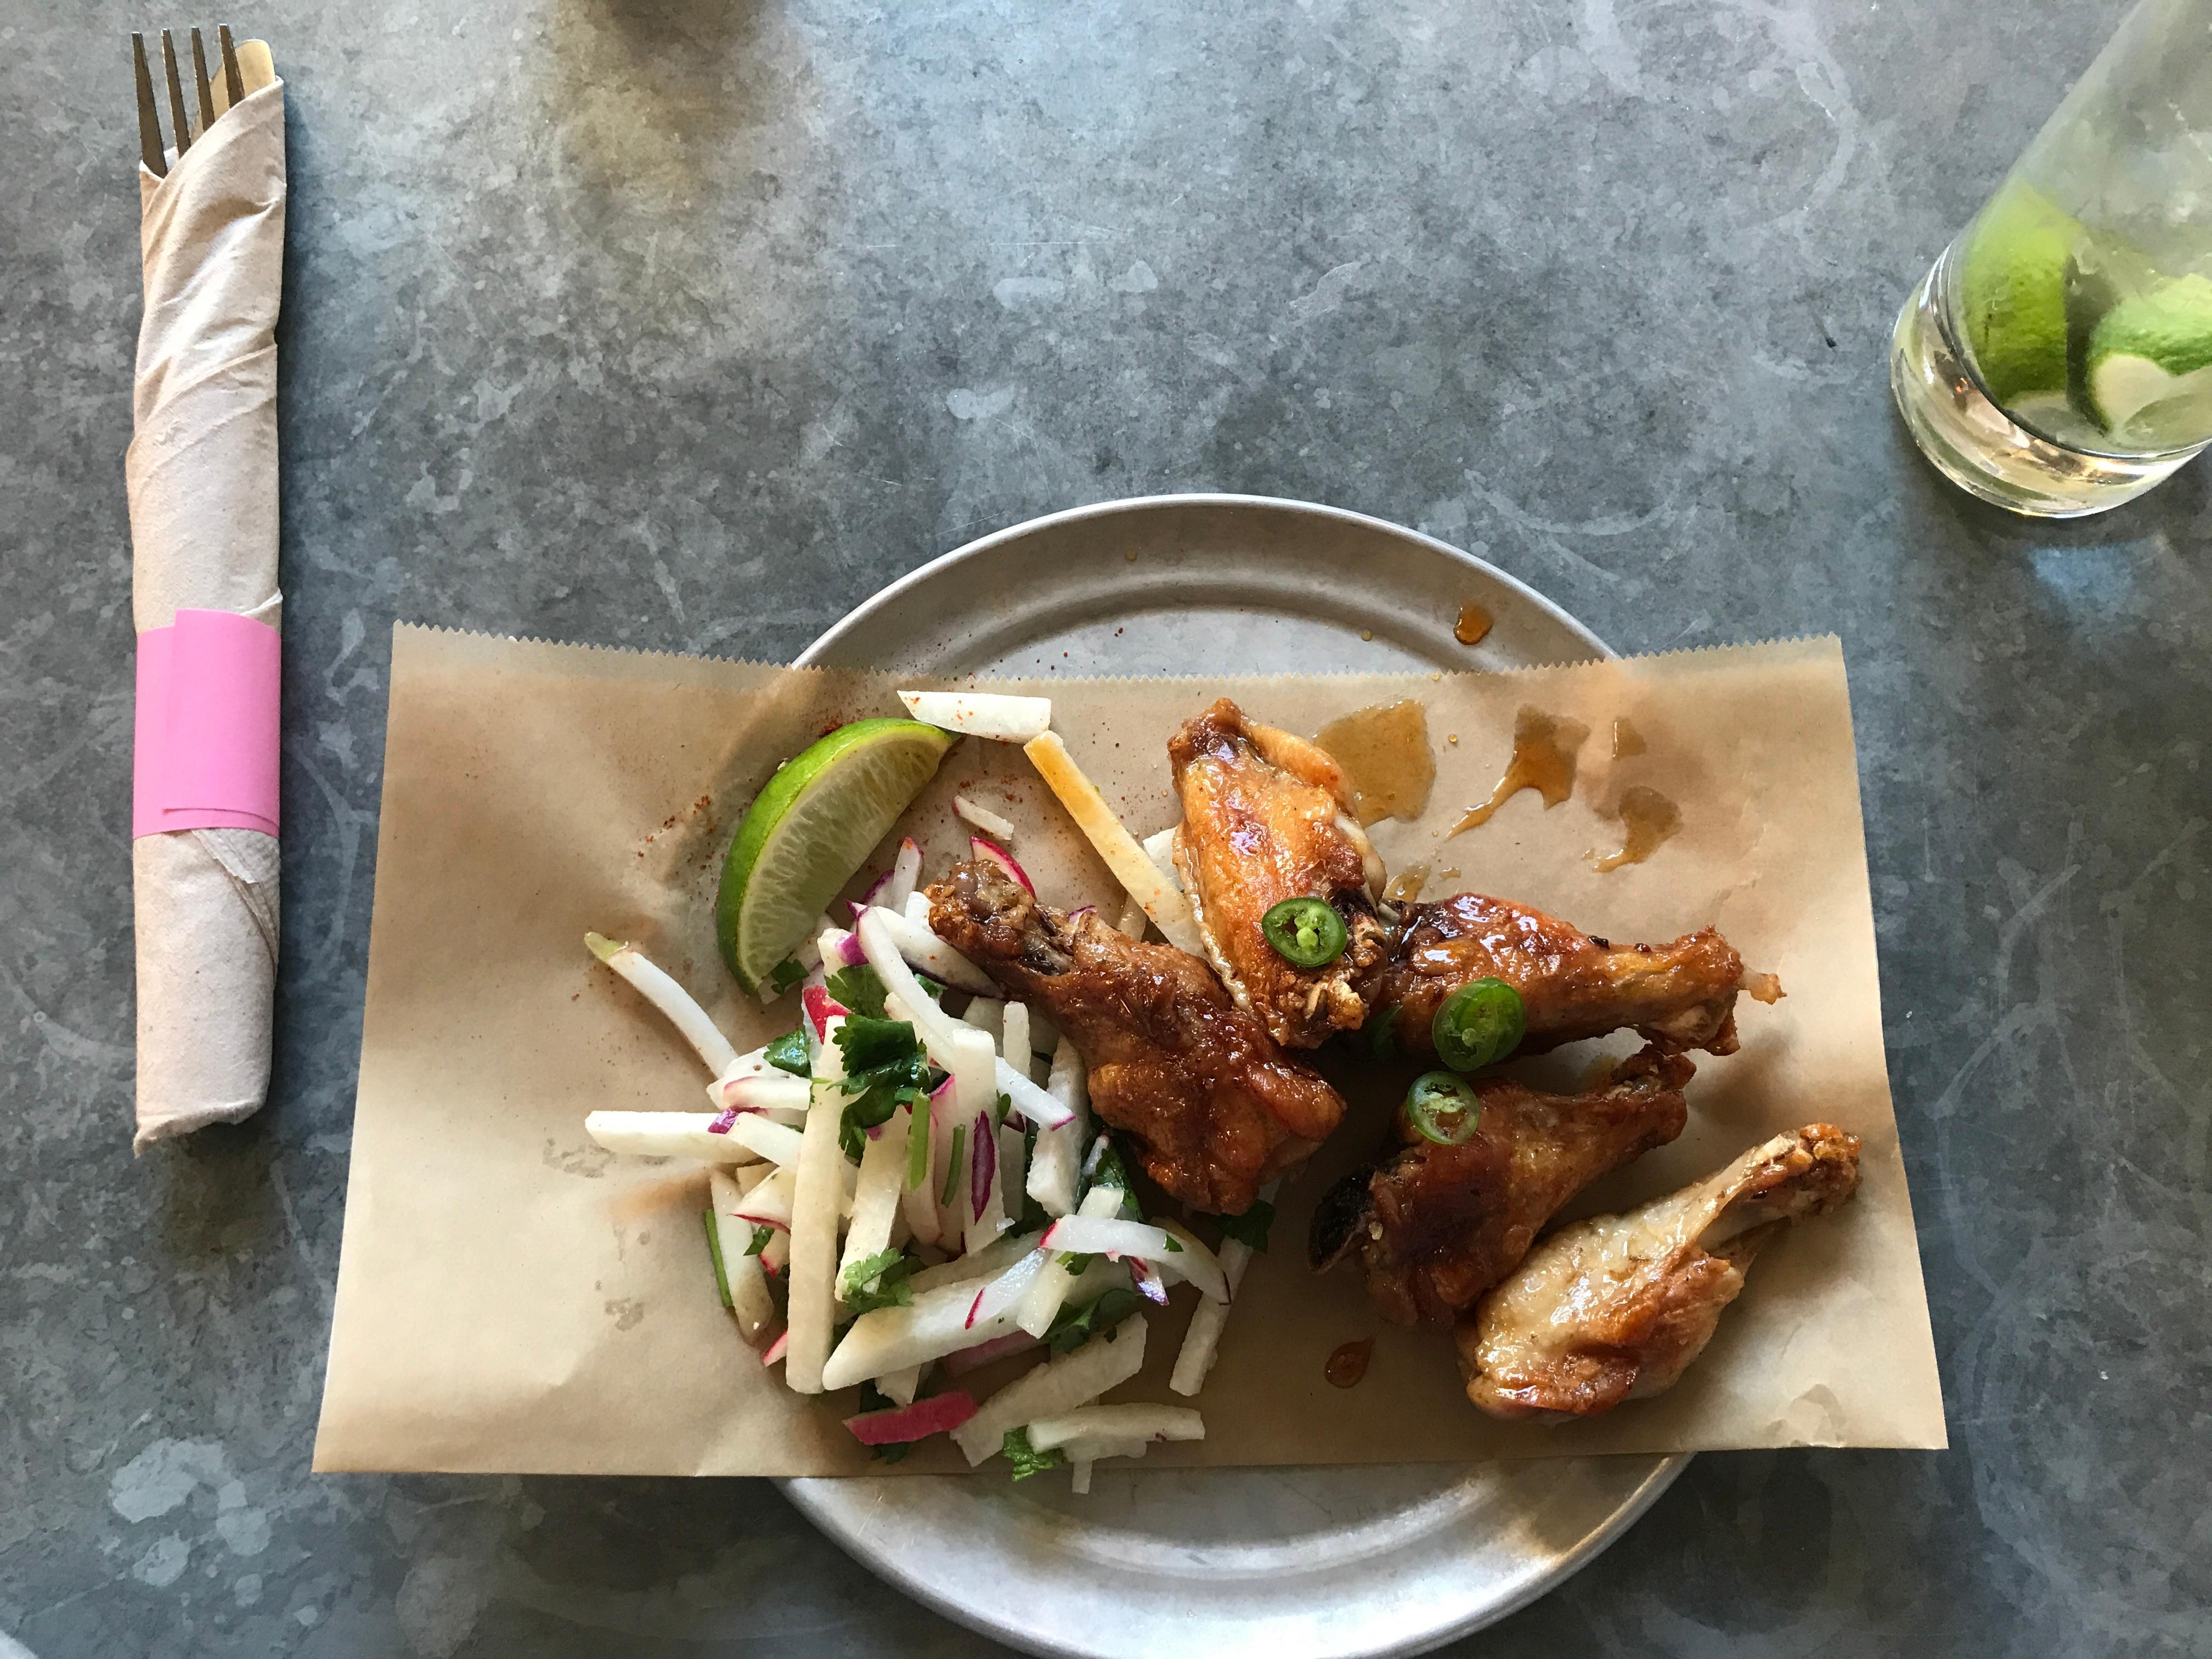 Chicken wings at Copal. (Image: Frank Guanco)